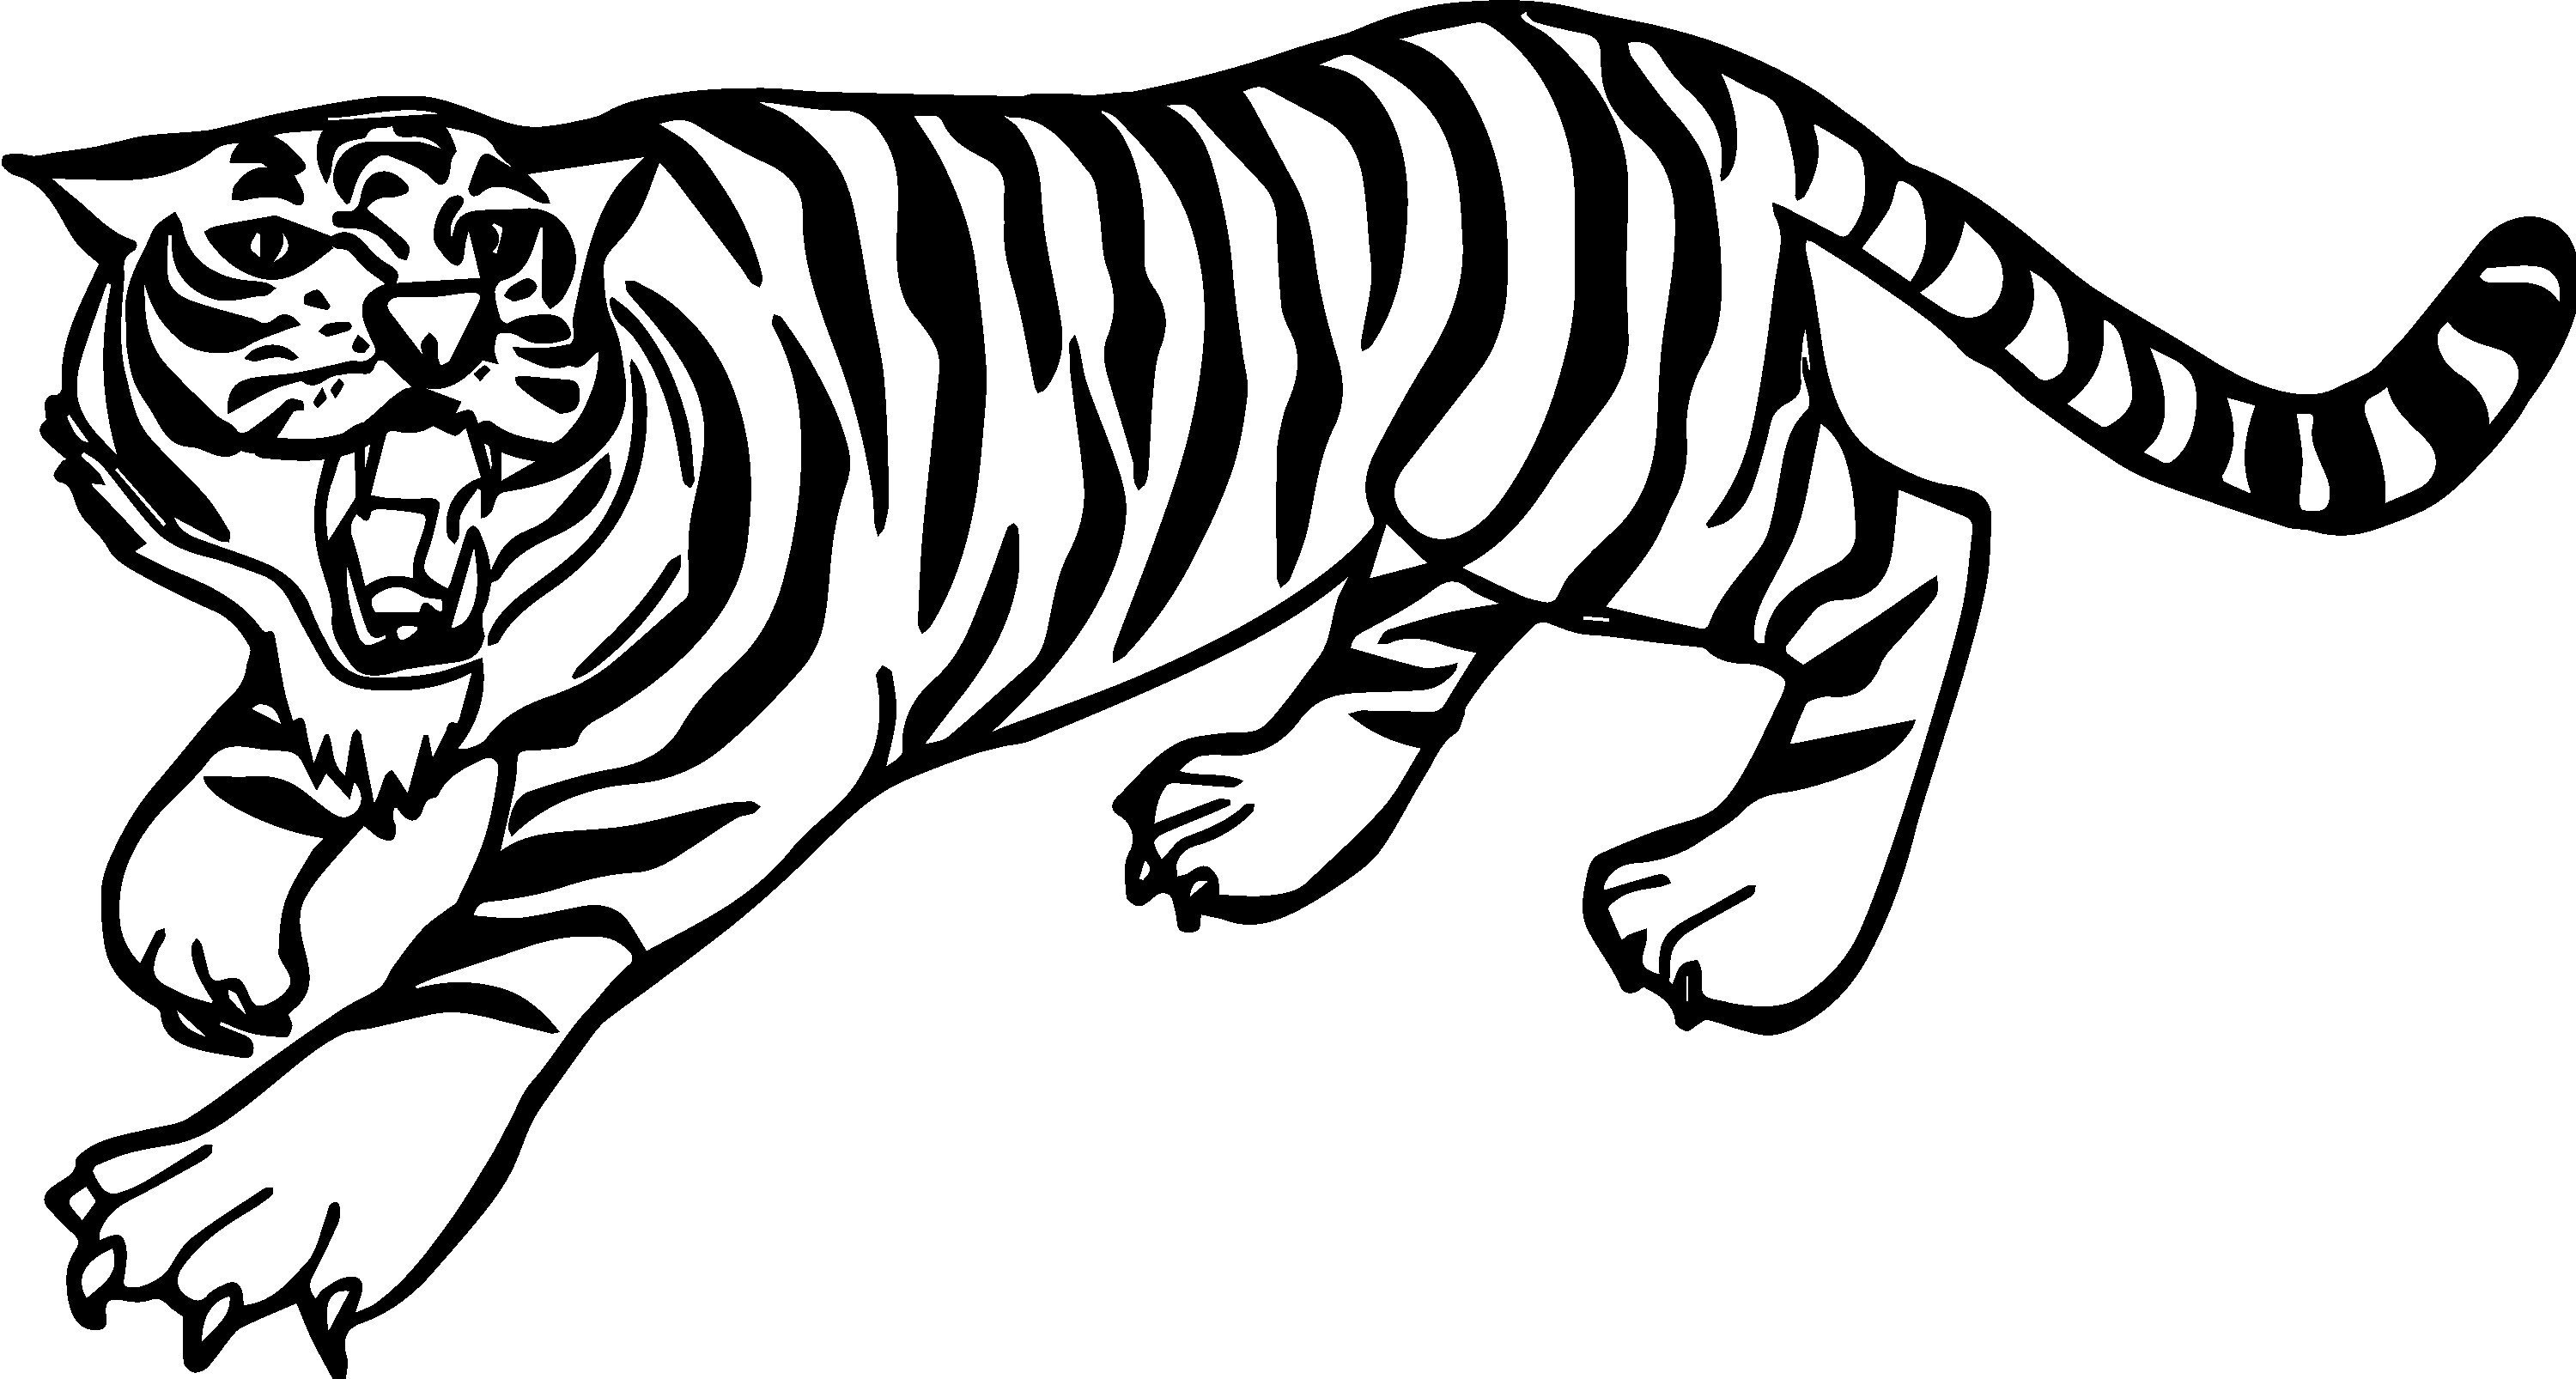 tiger printable coloring pages free printable tiger coloring pages for kids printable pages tiger coloring